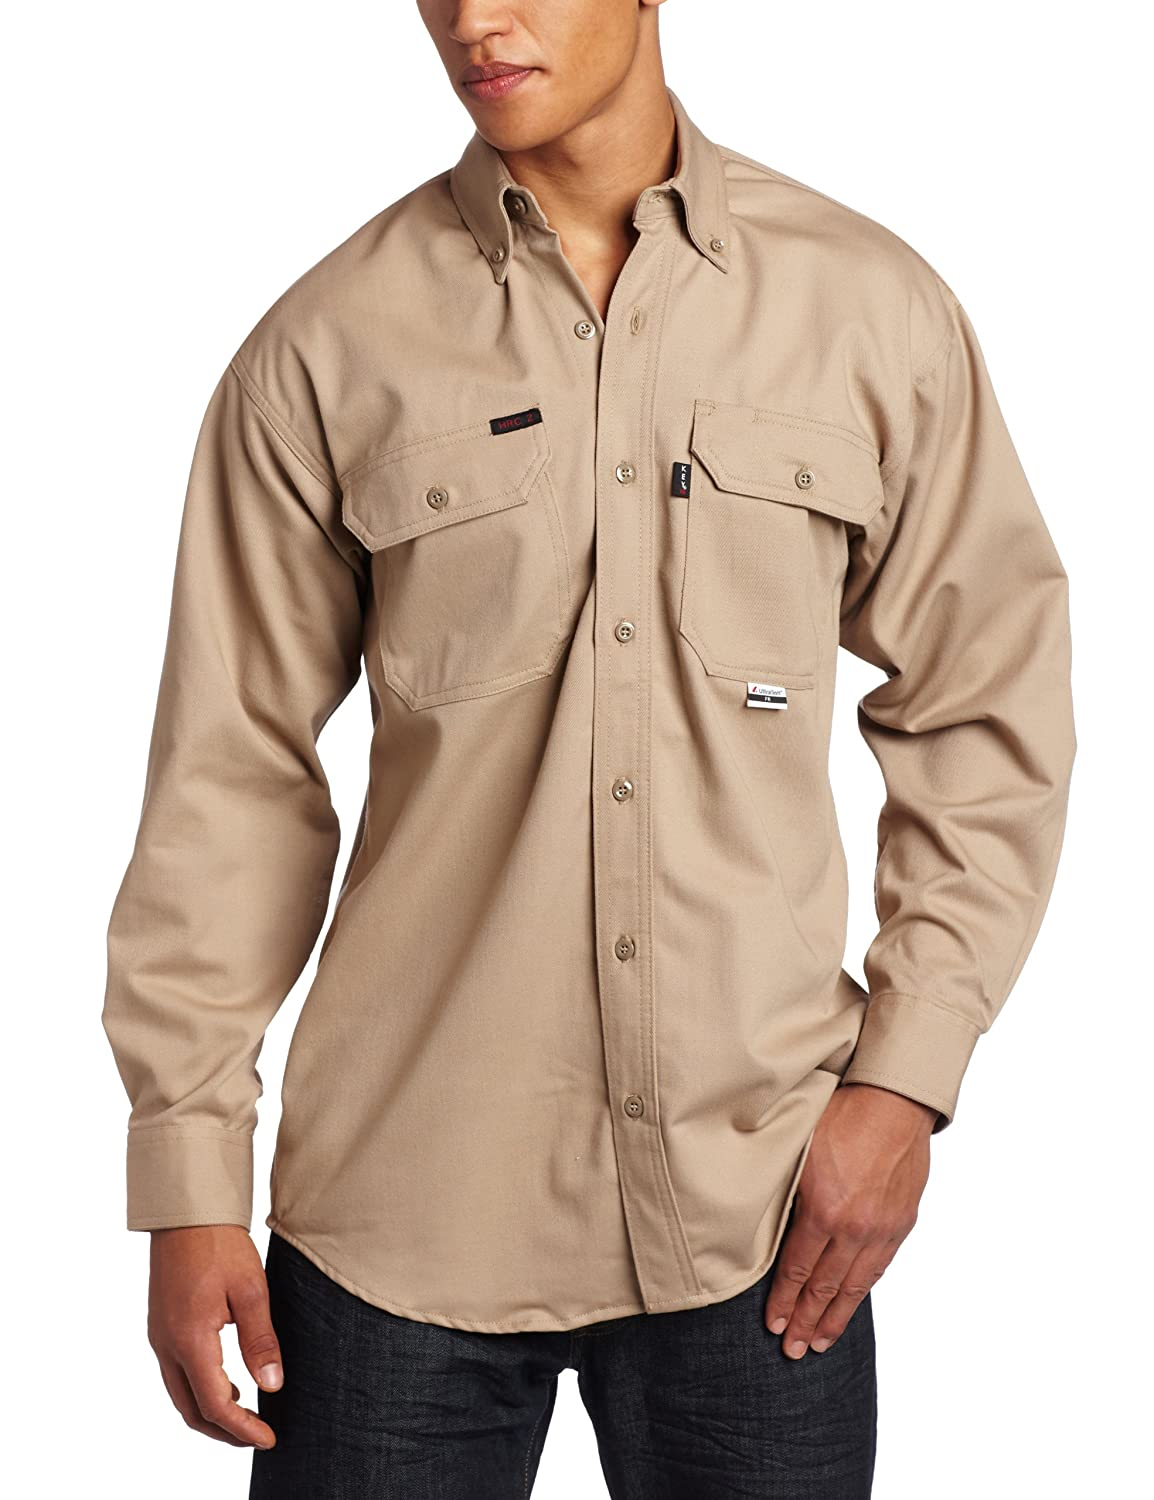 Key Industries Mens Fire Resistant Button Down Long Sleeve Twill Shirt